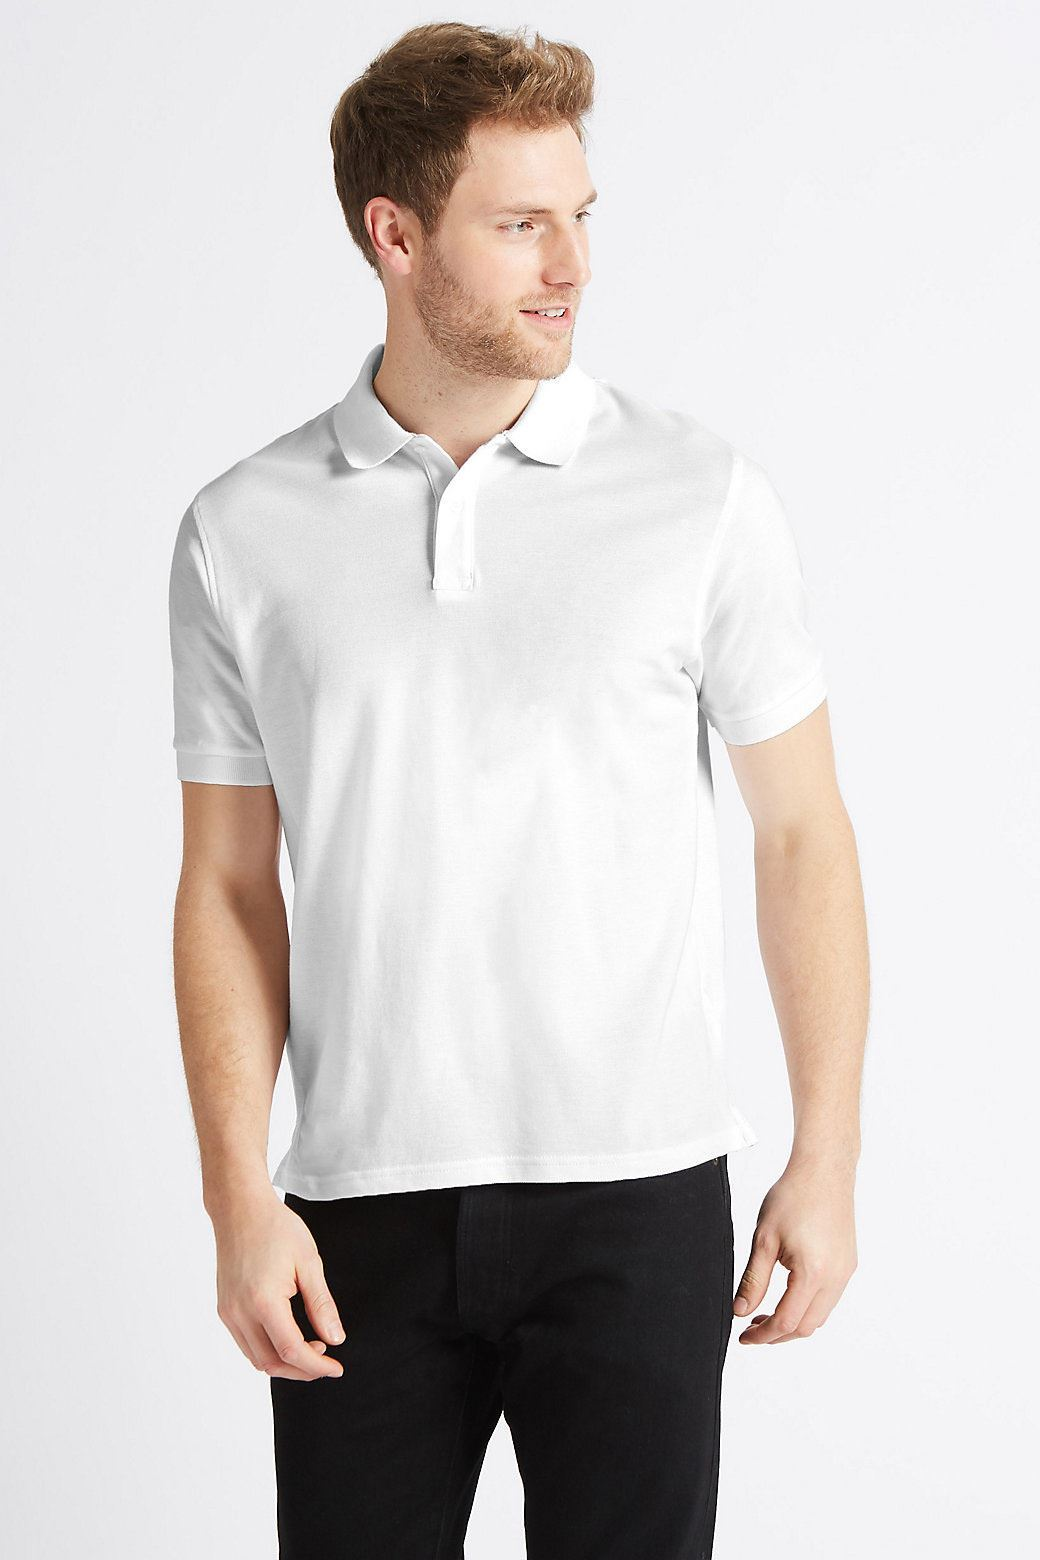 MARKS-amp-SPENCER-Mens-Classic-Cotton-Polo-Shirt-M-amp-S-All-Colours-and-Large-Sizes thumbnail 25